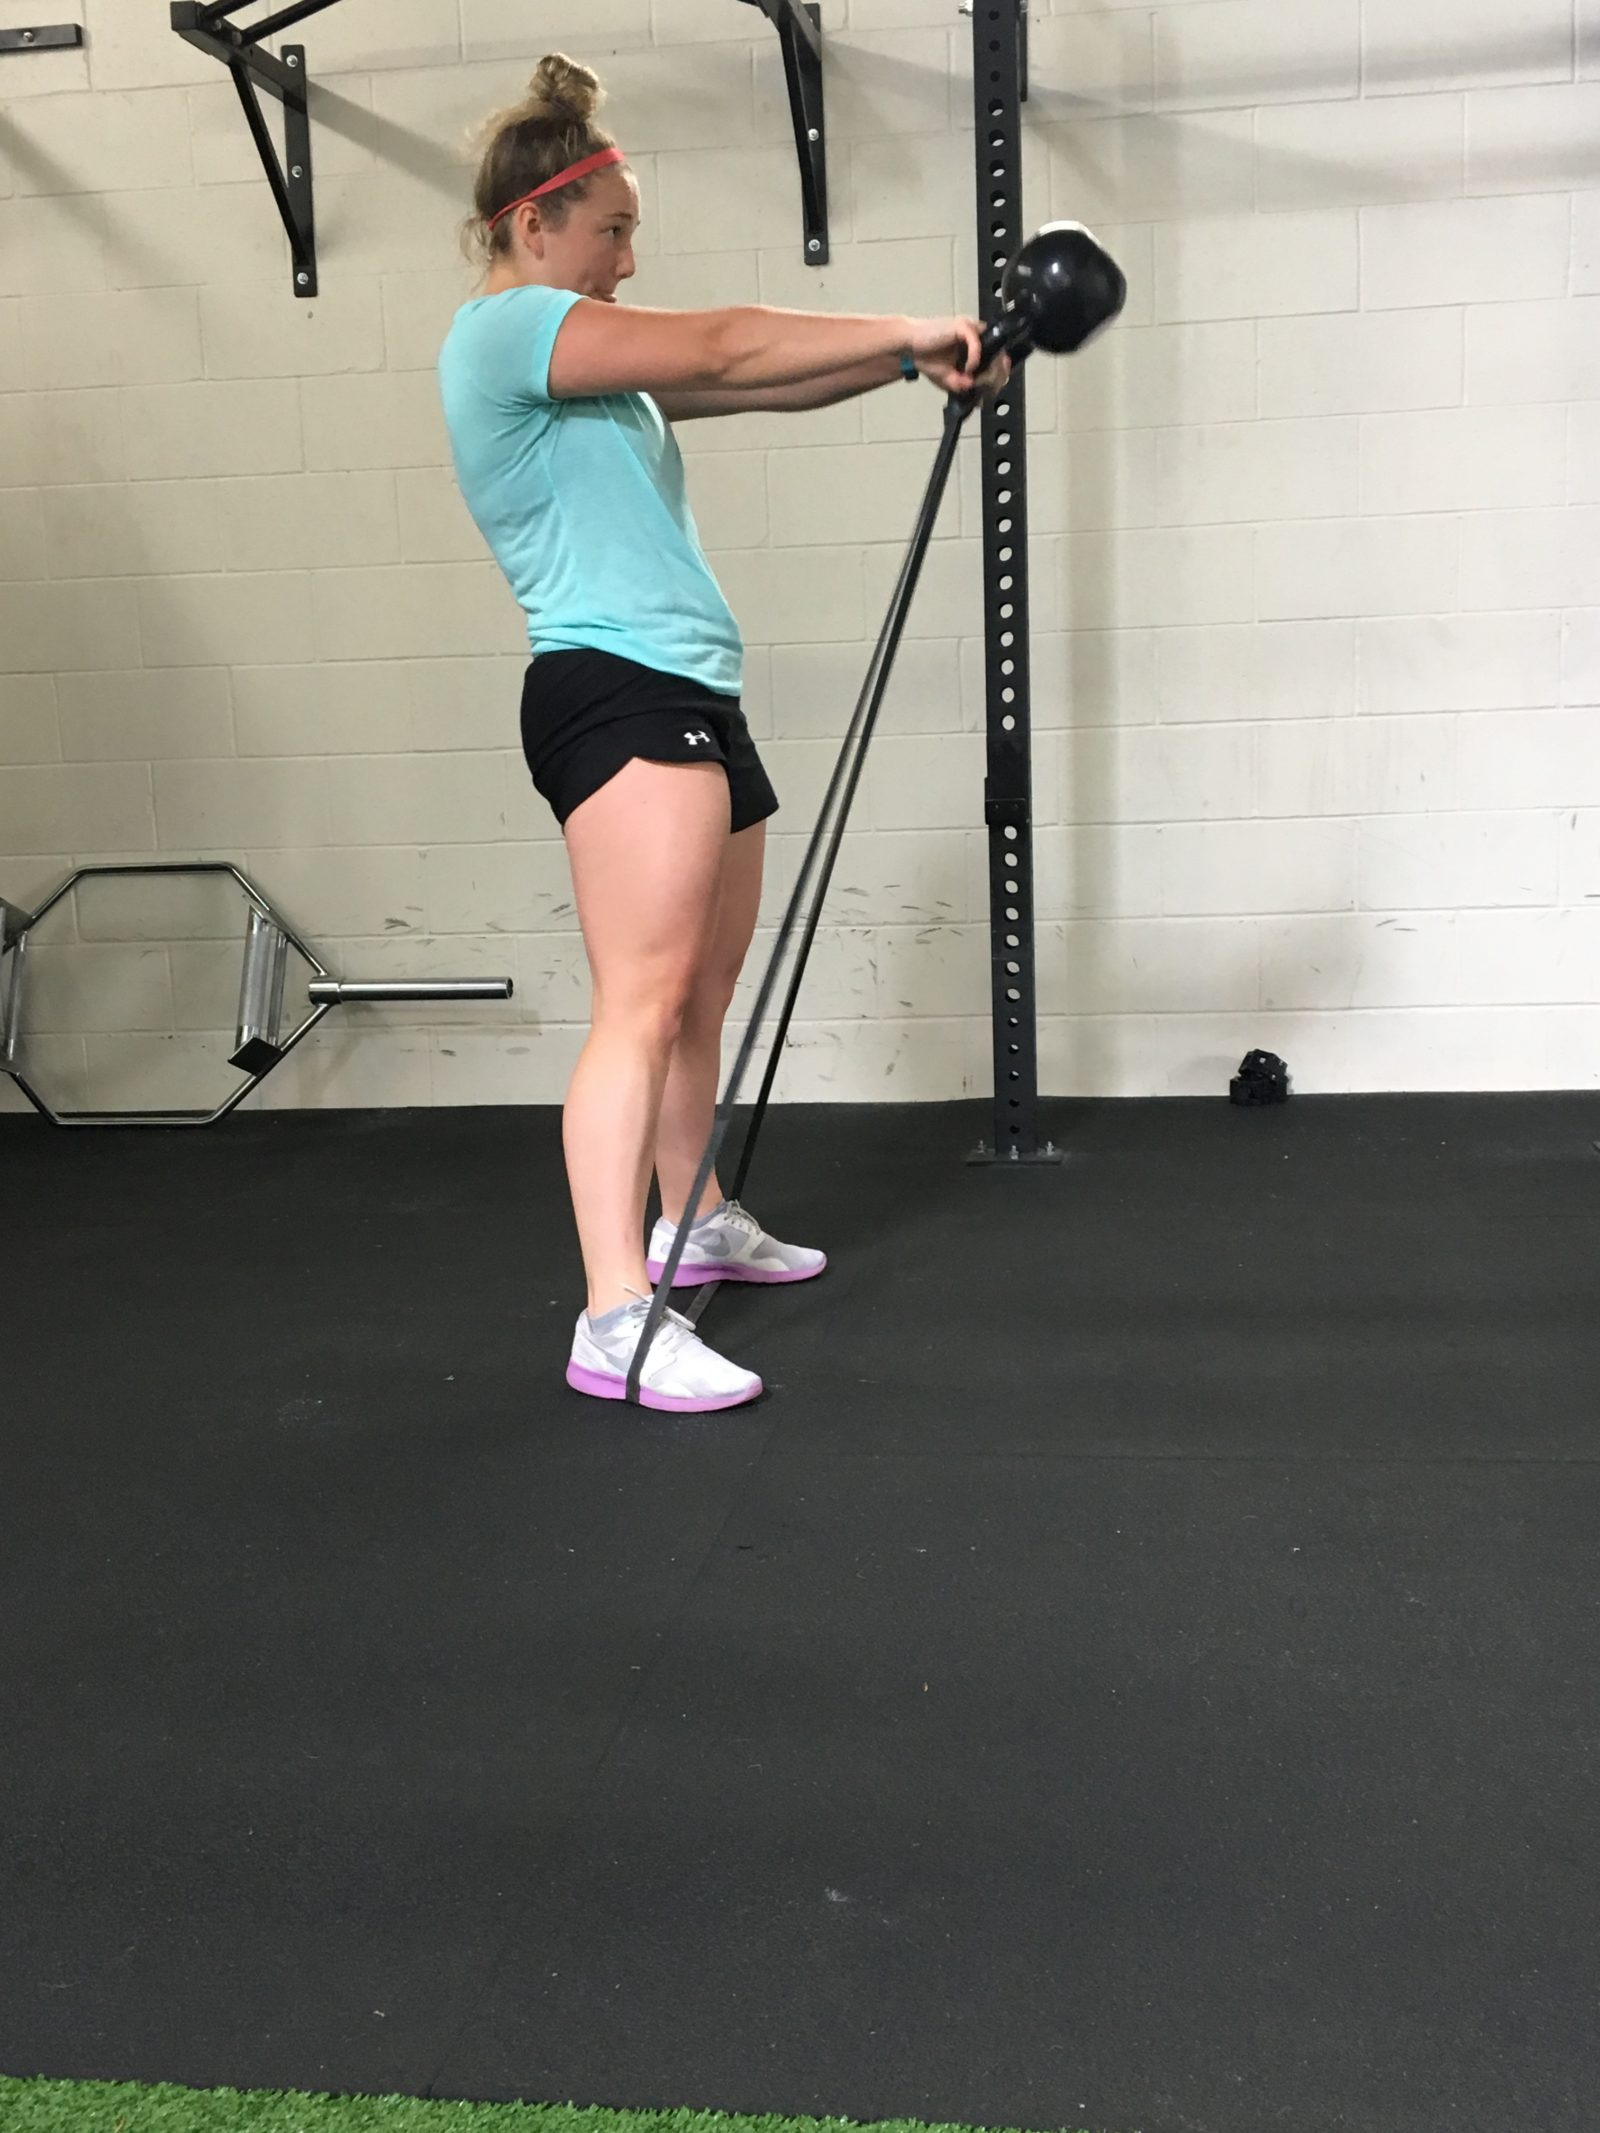 Female weight training, Soccer, Off season, Bracebridge personal training